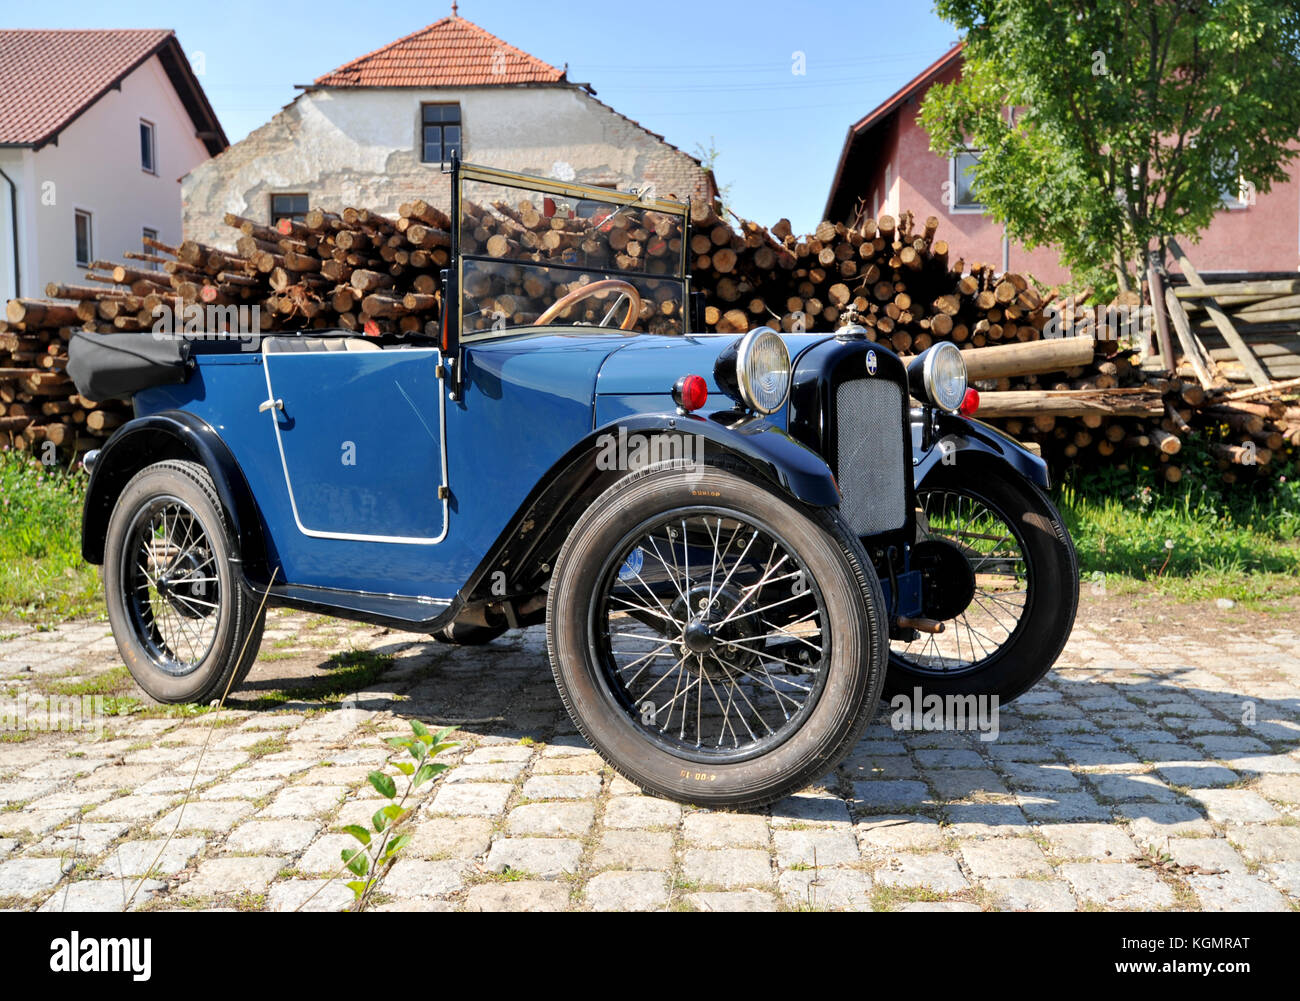 German Car 1920\'s Stock Photos & German Car 1920\'s Stock Images - Alamy